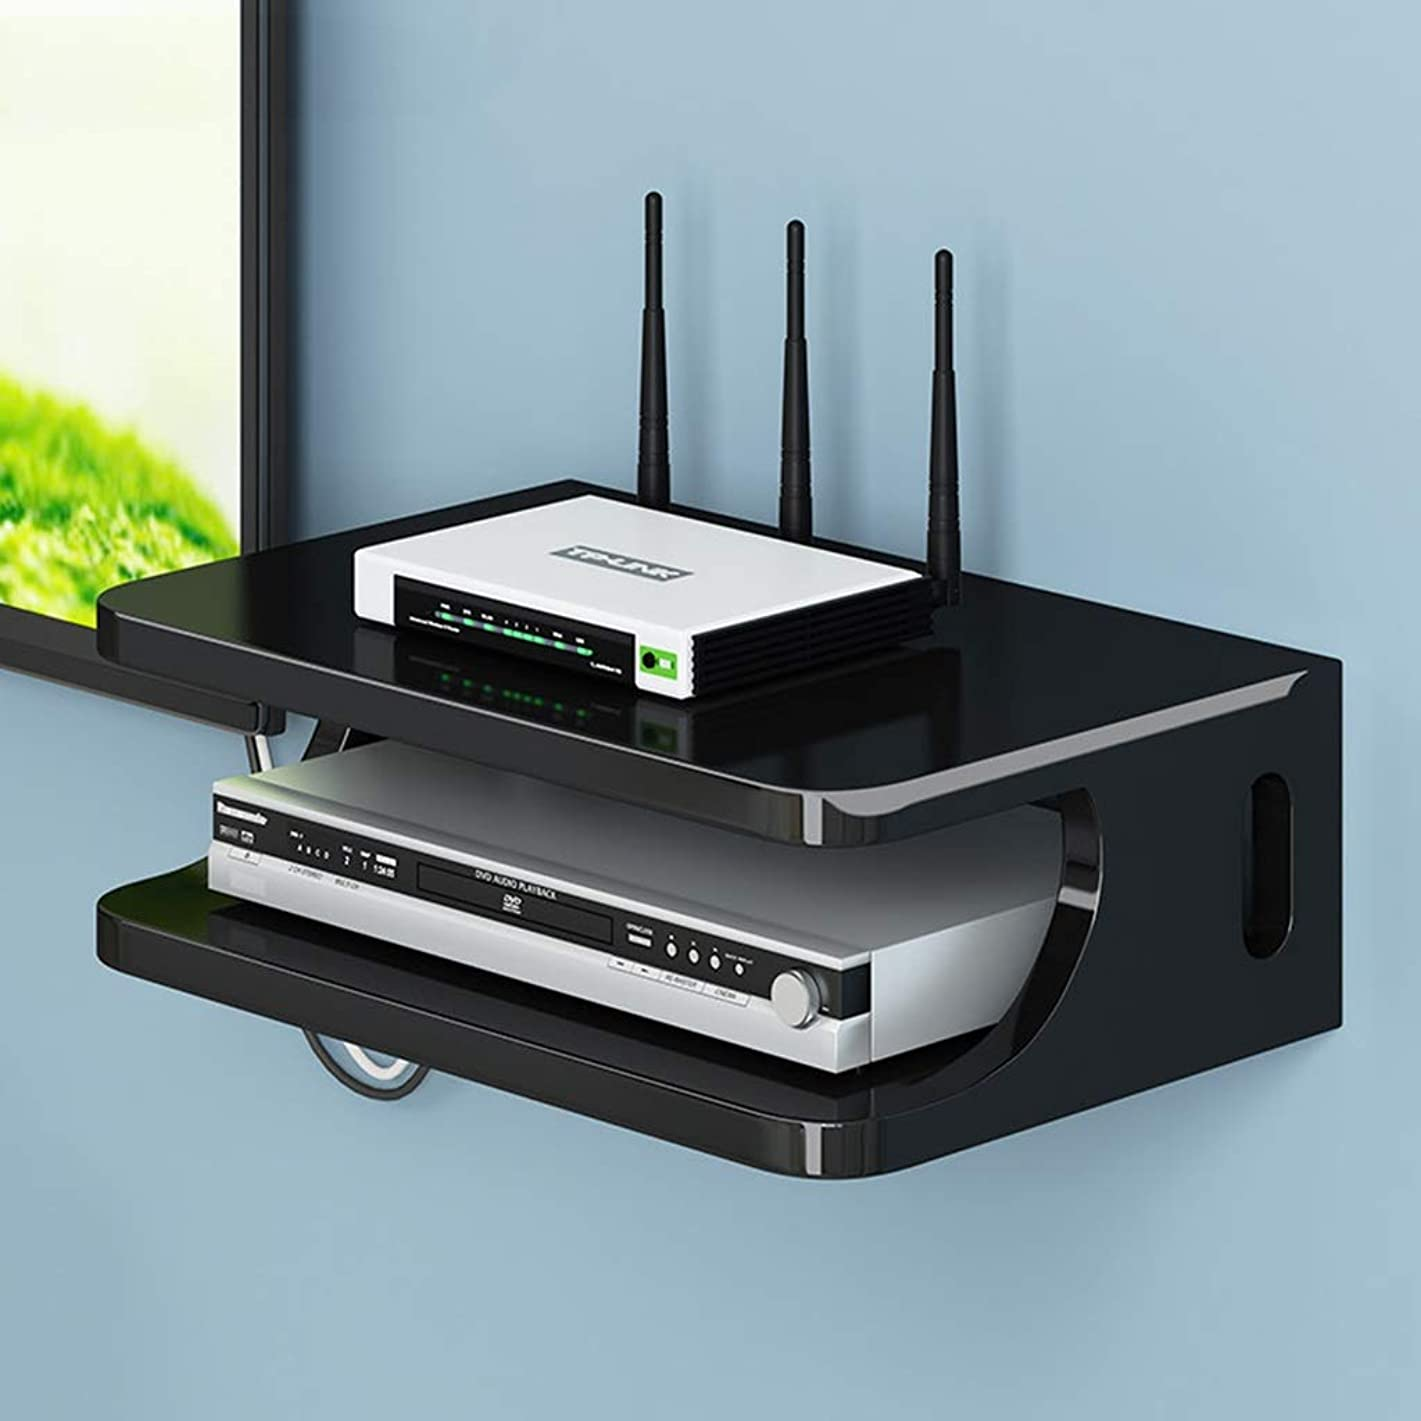 Floating Shelf Wall Mount Shelf Bracket for WiFi Router TV Box Set Top Box Modems Cable Boxes DVD Players Streaming Media Devices (Color : Black)